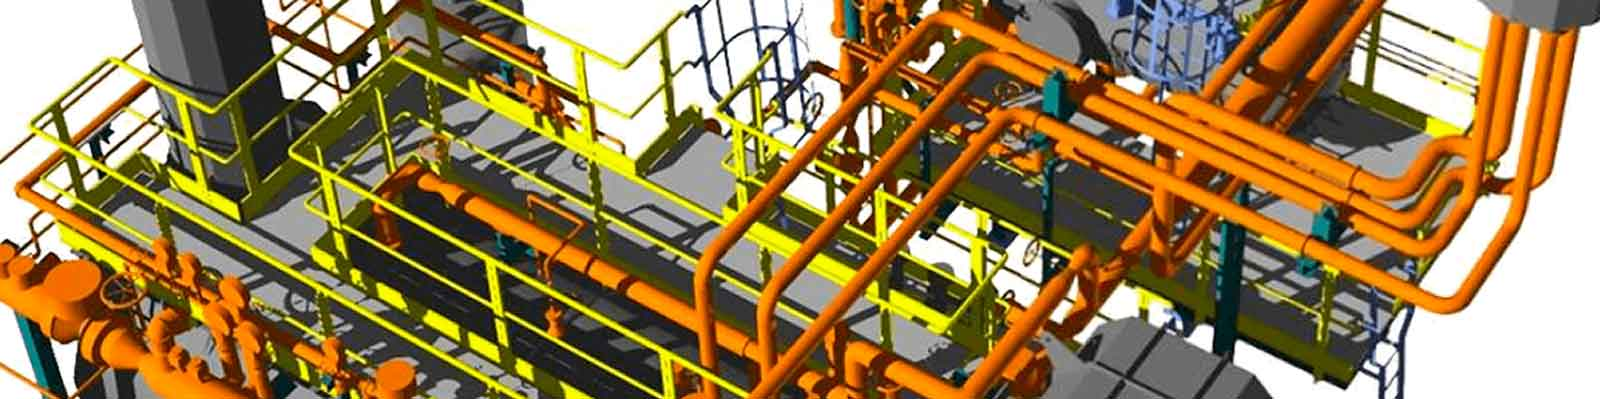 CADE-plant-engineering-services-detailed-3d-modeling